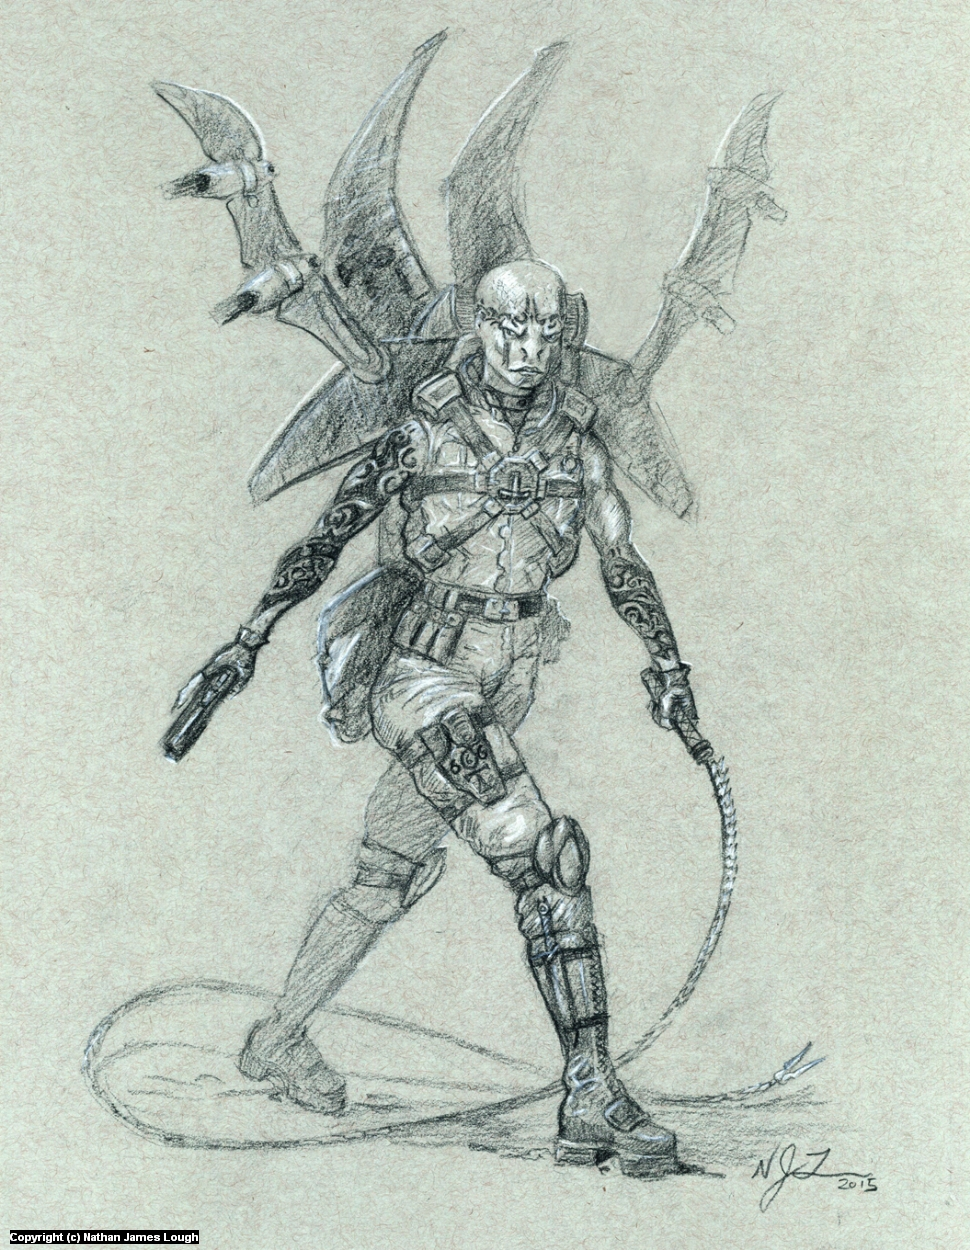 Viper Airborne Infiltration unit Artwork by Nathan  Lough